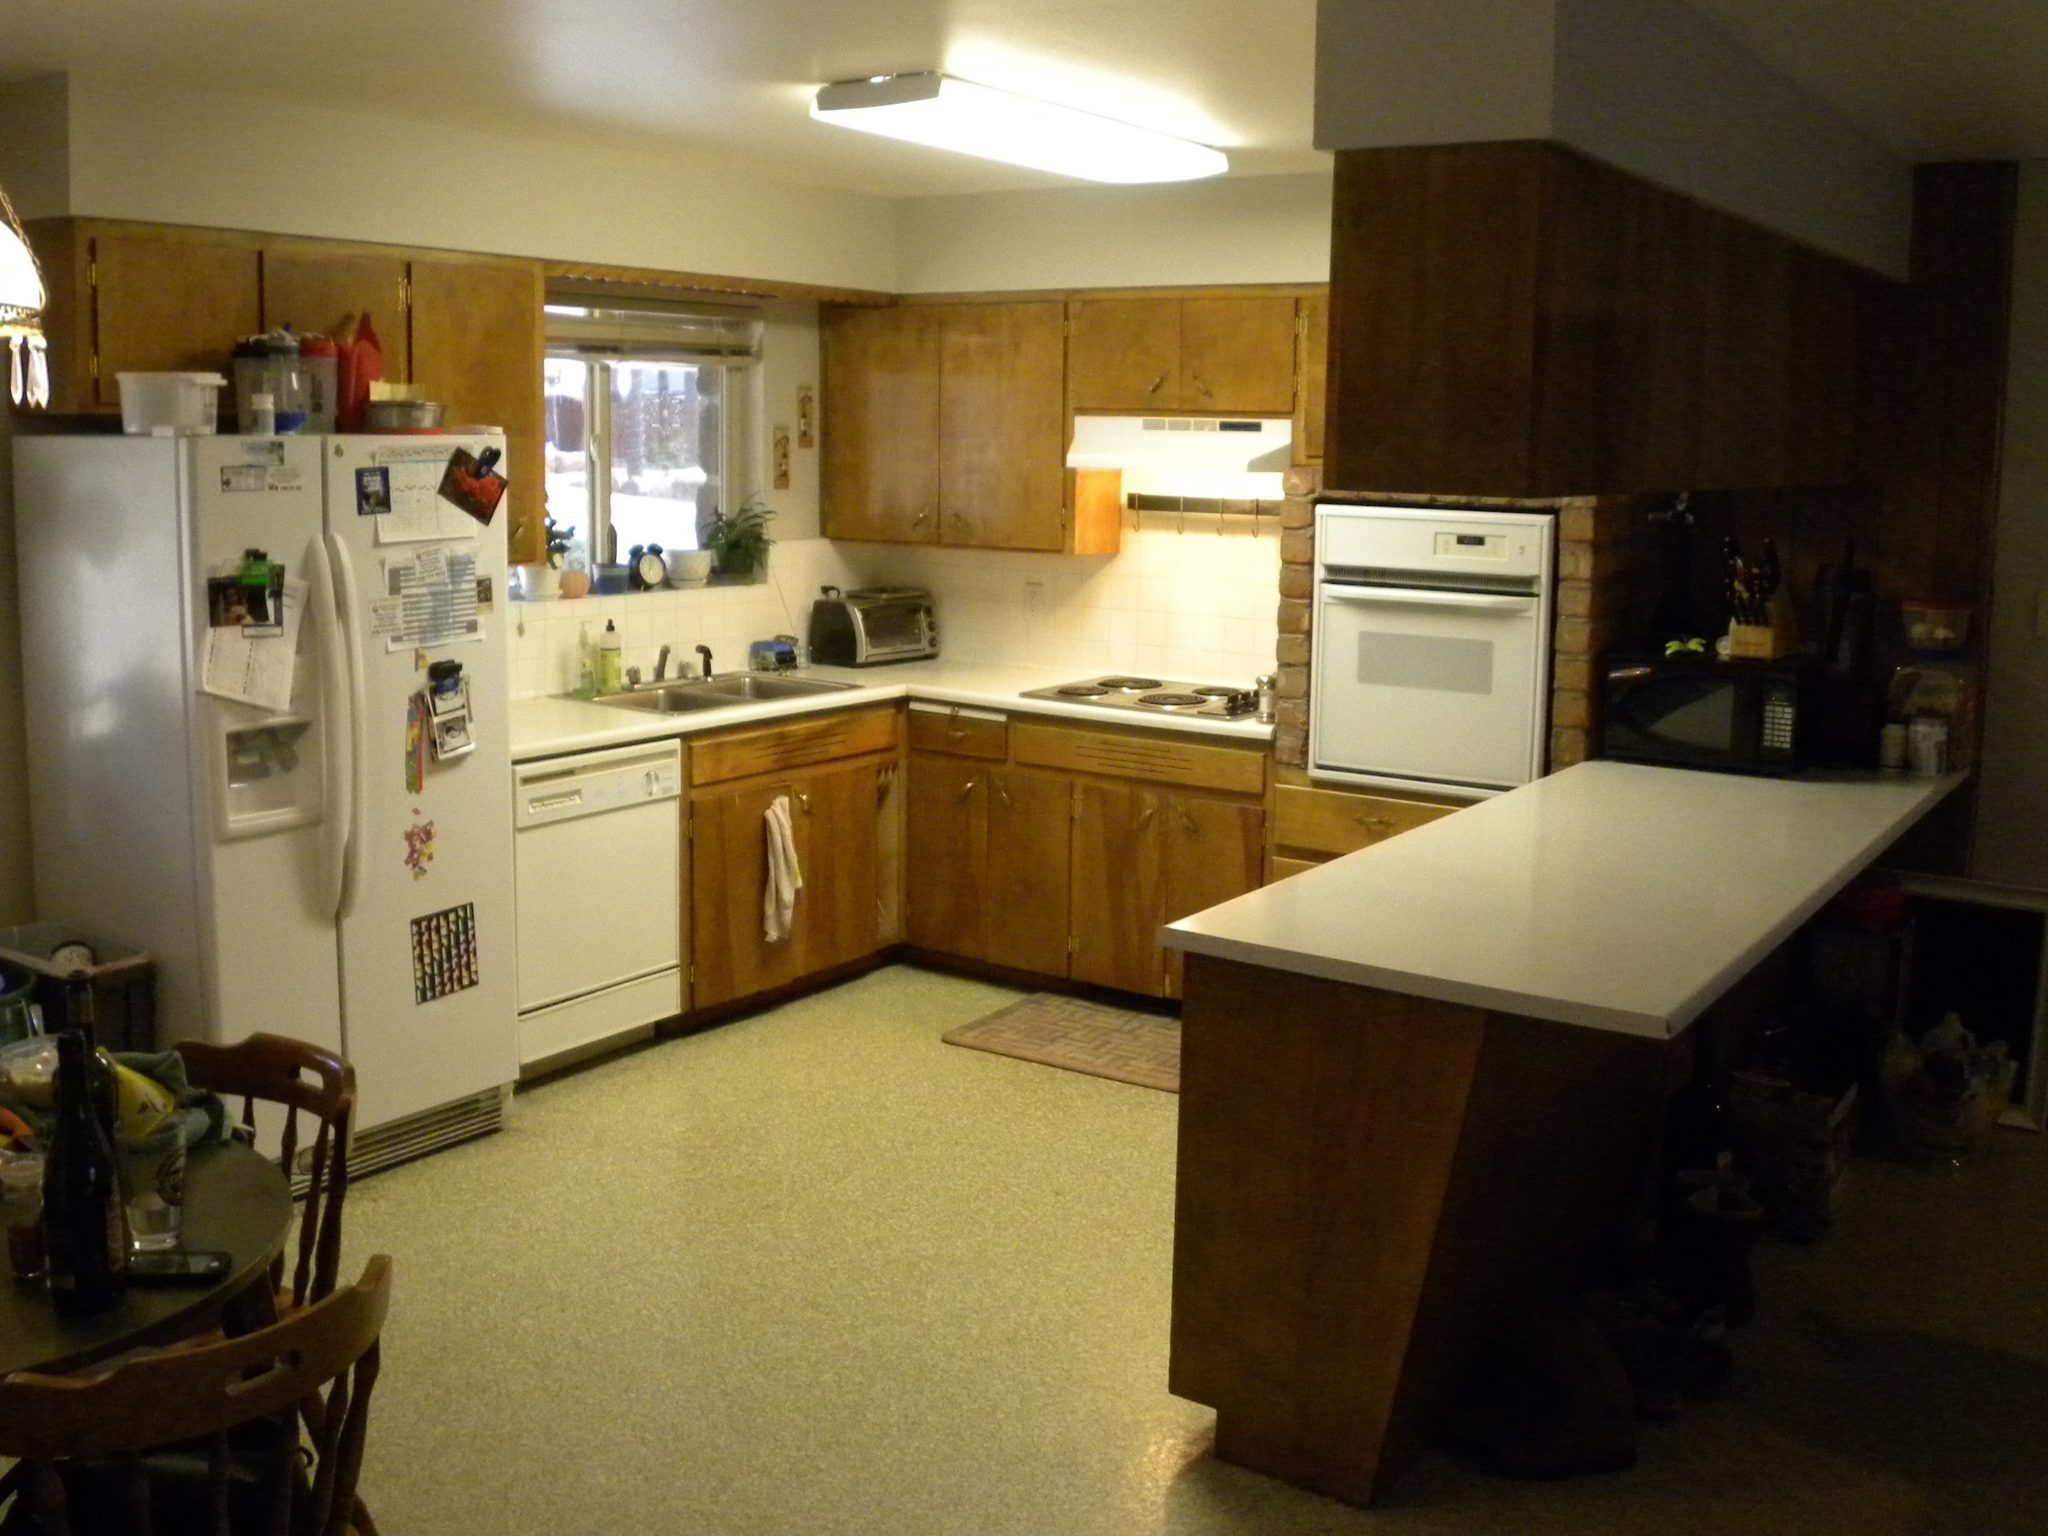 Interior shot of a residential kitchen in need to remodeling